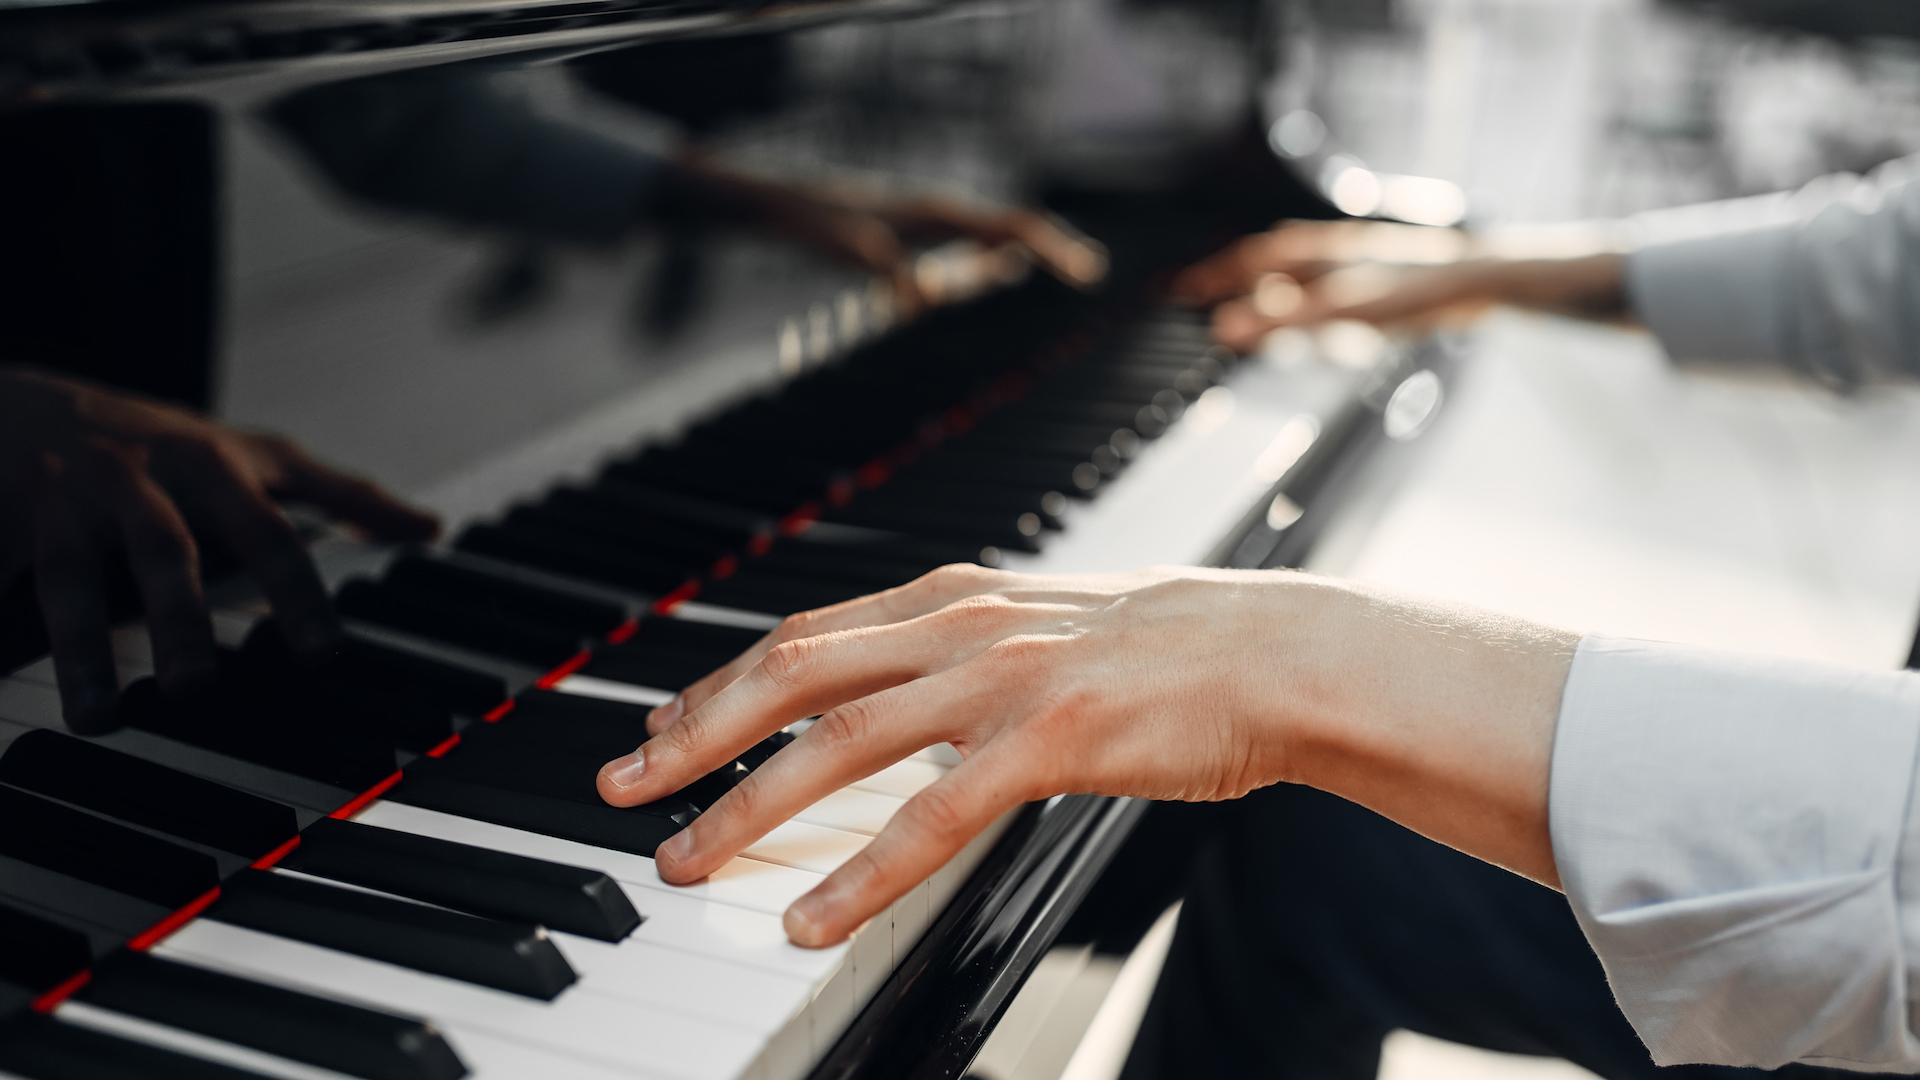 The hands of a pianist performing a musical piece